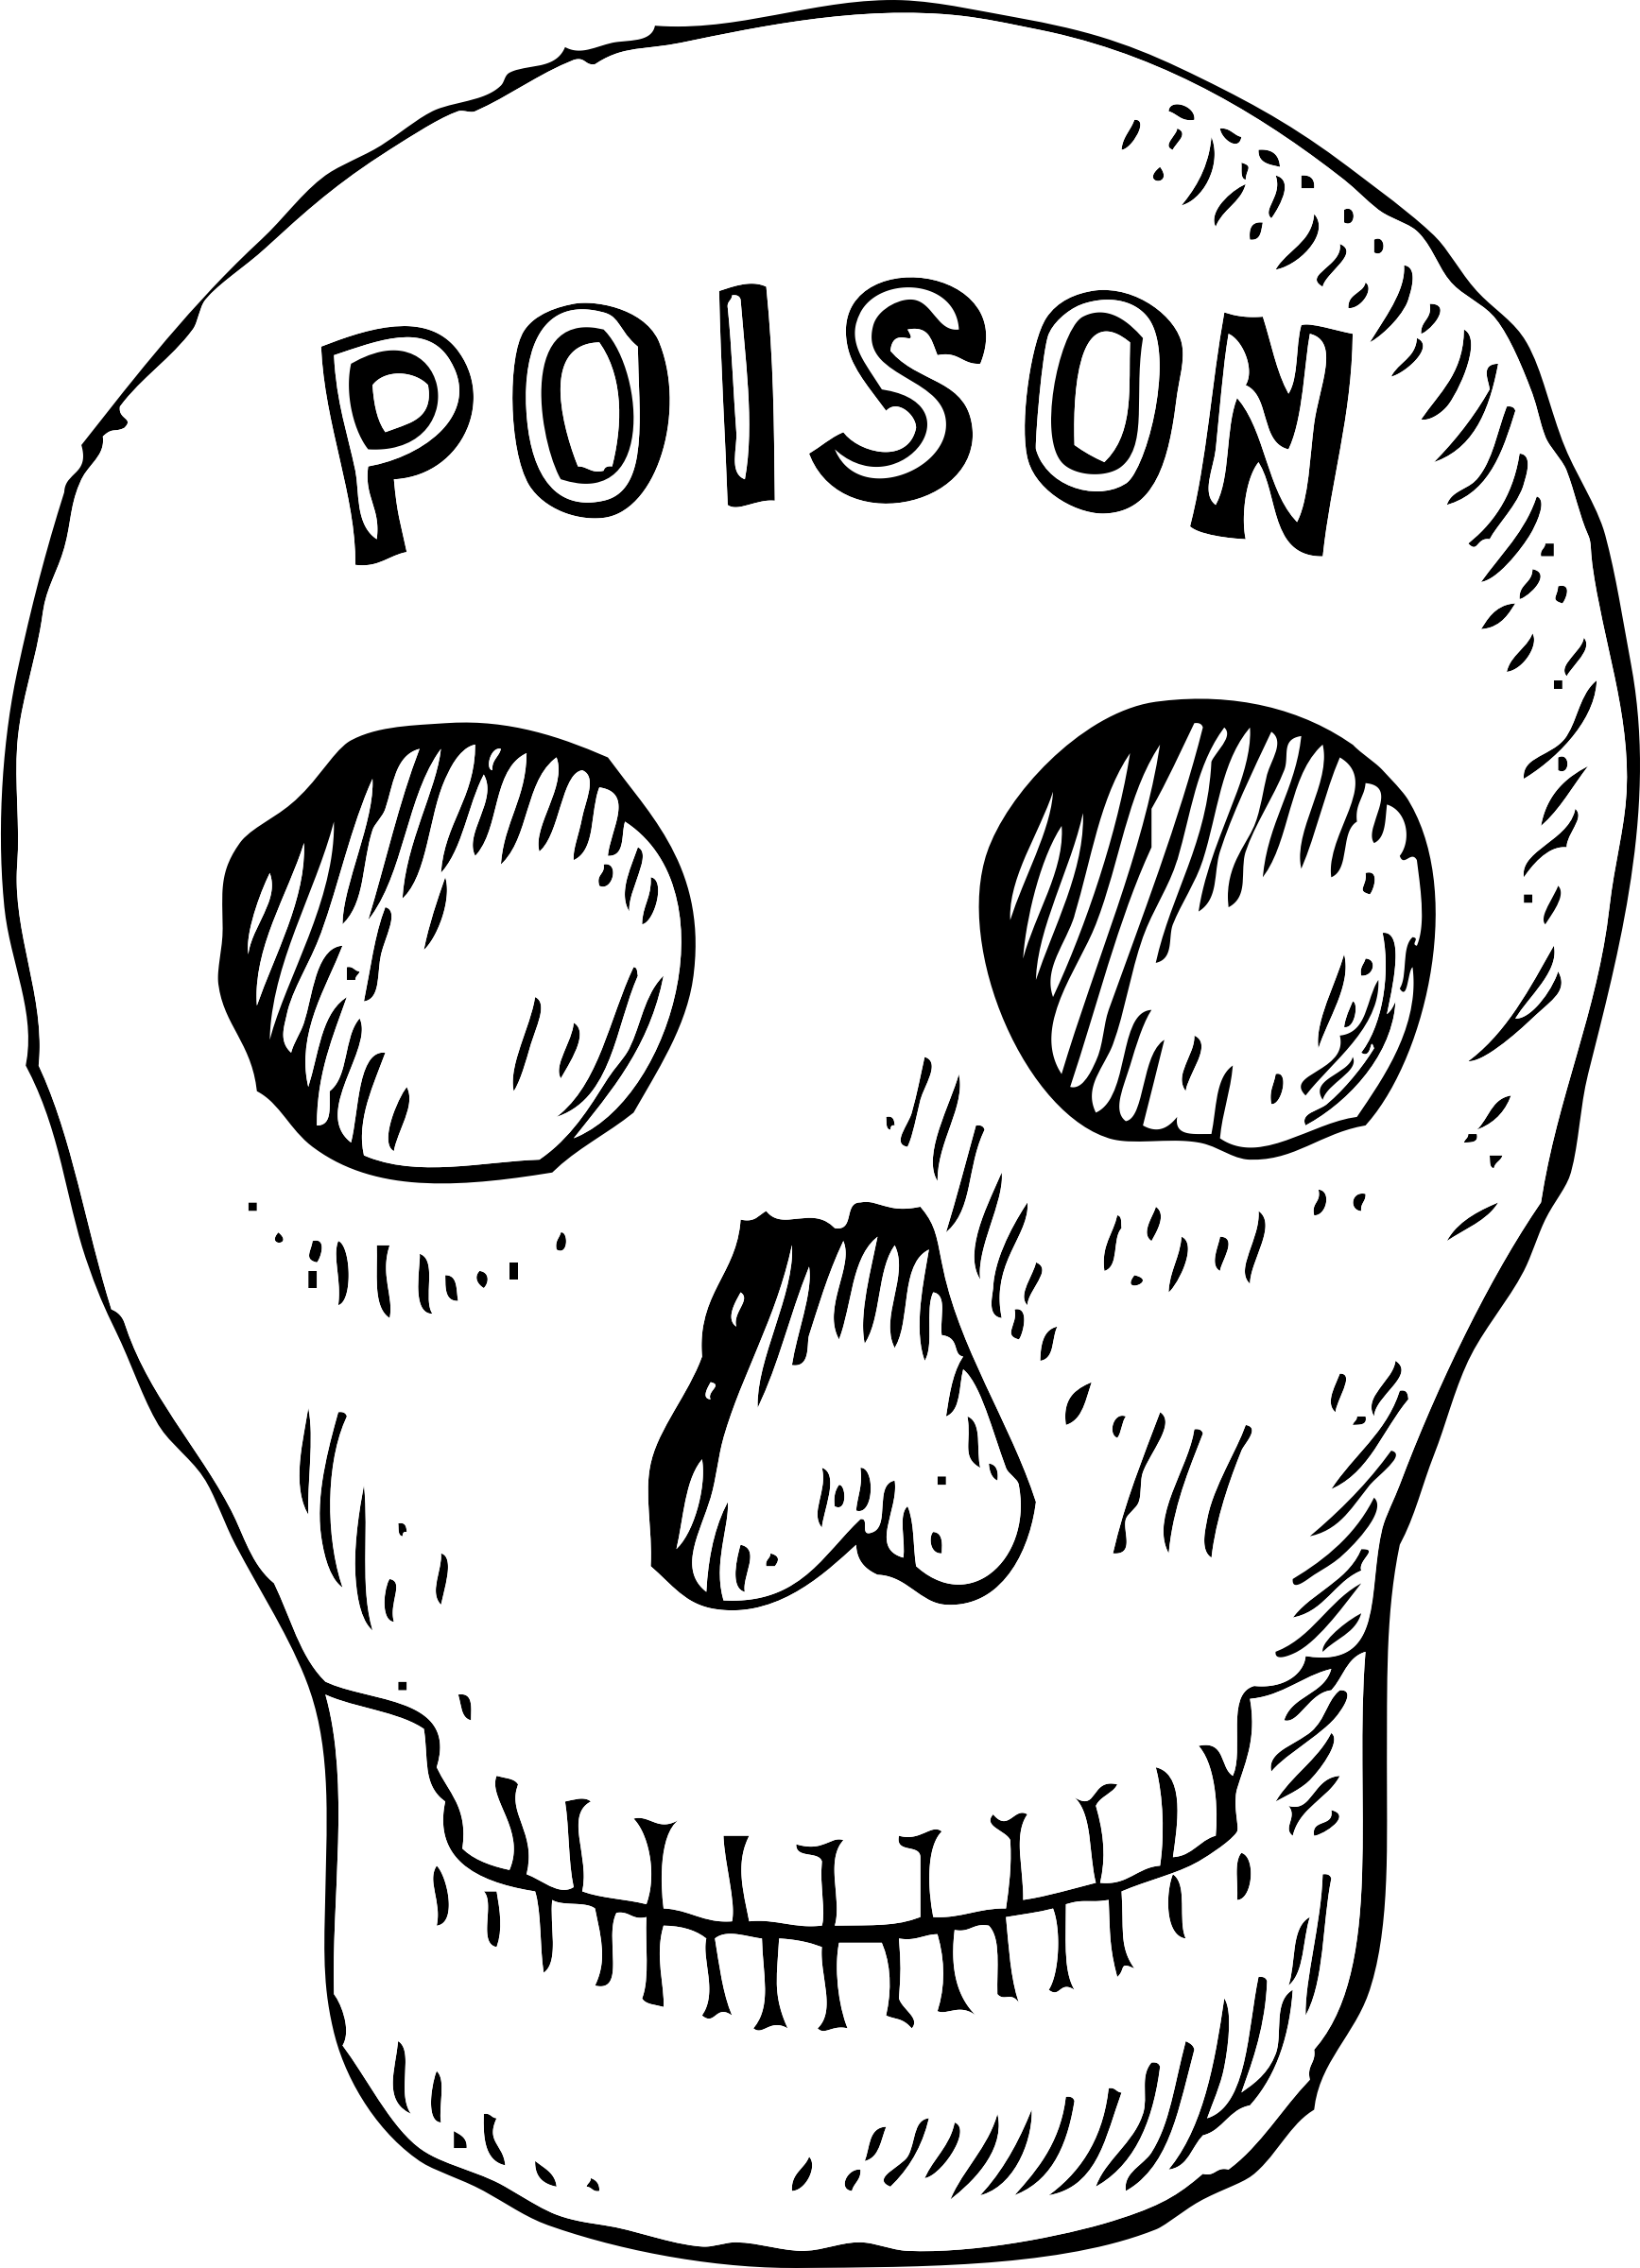 Poison clipart poison control. Skull big image png